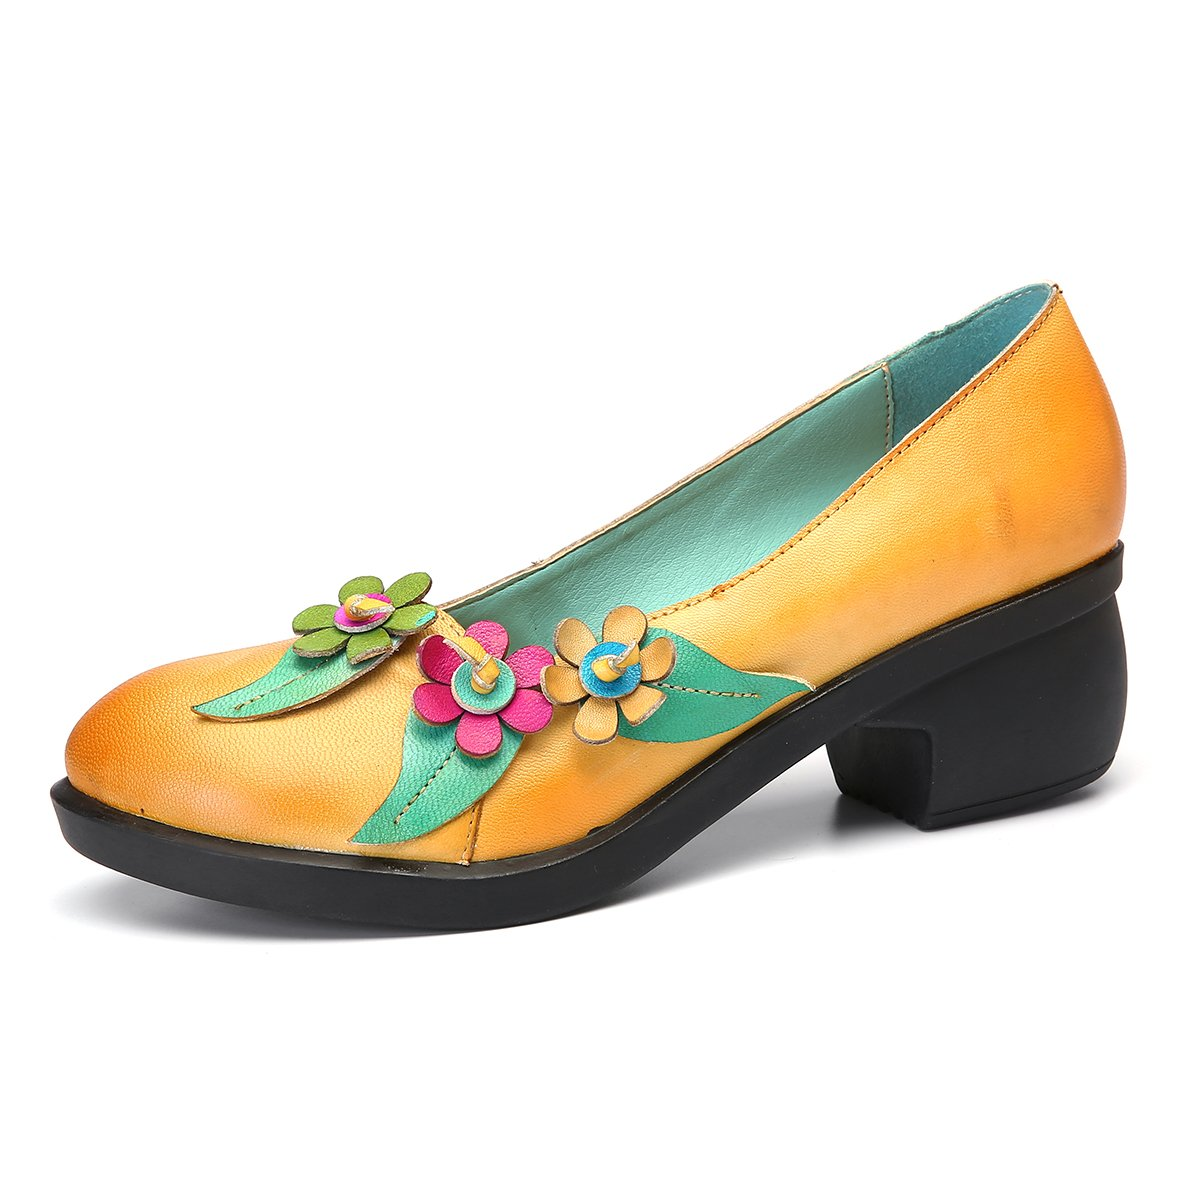 Women Pump Shoes Leather Mary Jane Mid Heel Summer Ladies Wedding Party Dress Shoe Round Toe Casual Sandals Yellow 9 (M) US